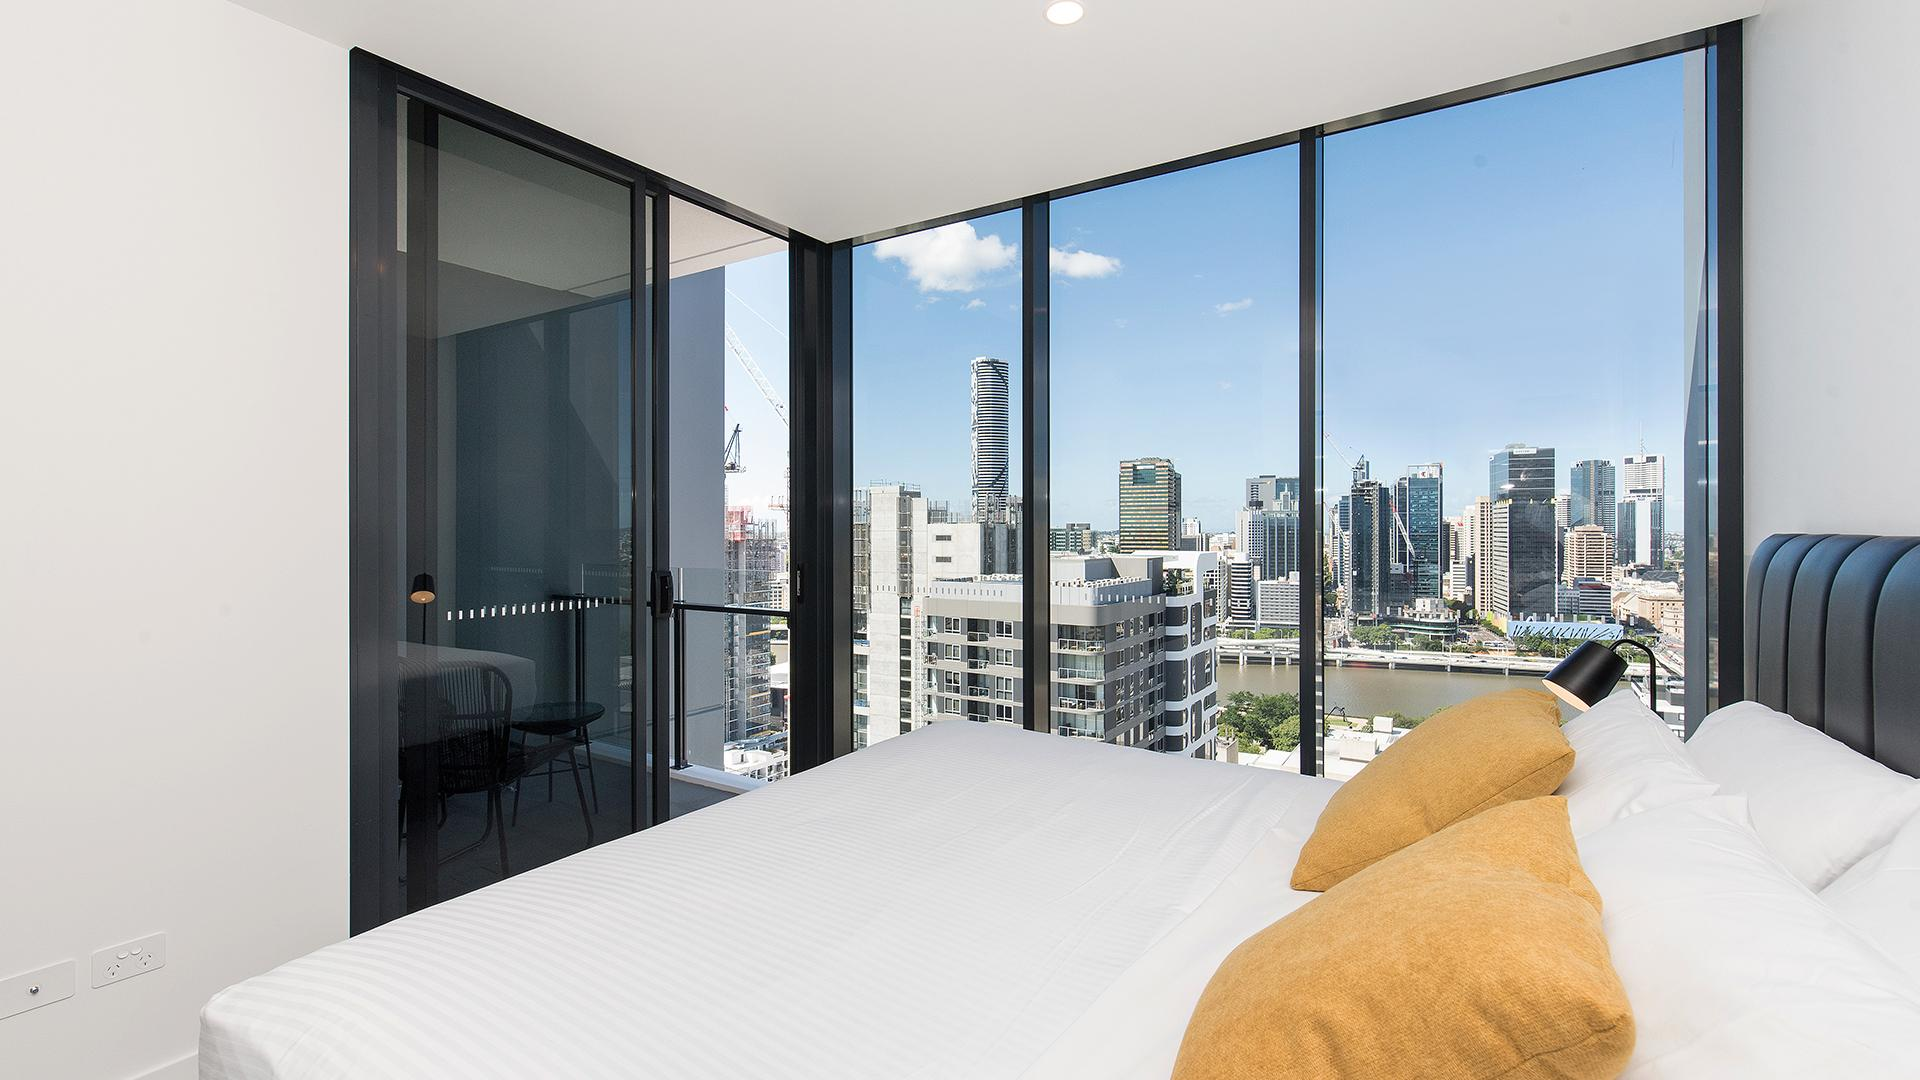 One-Bedroom Apartment with City View image 1 at Arise Ivy & Eve Apartments by Brisbane City, Queensland, Australia